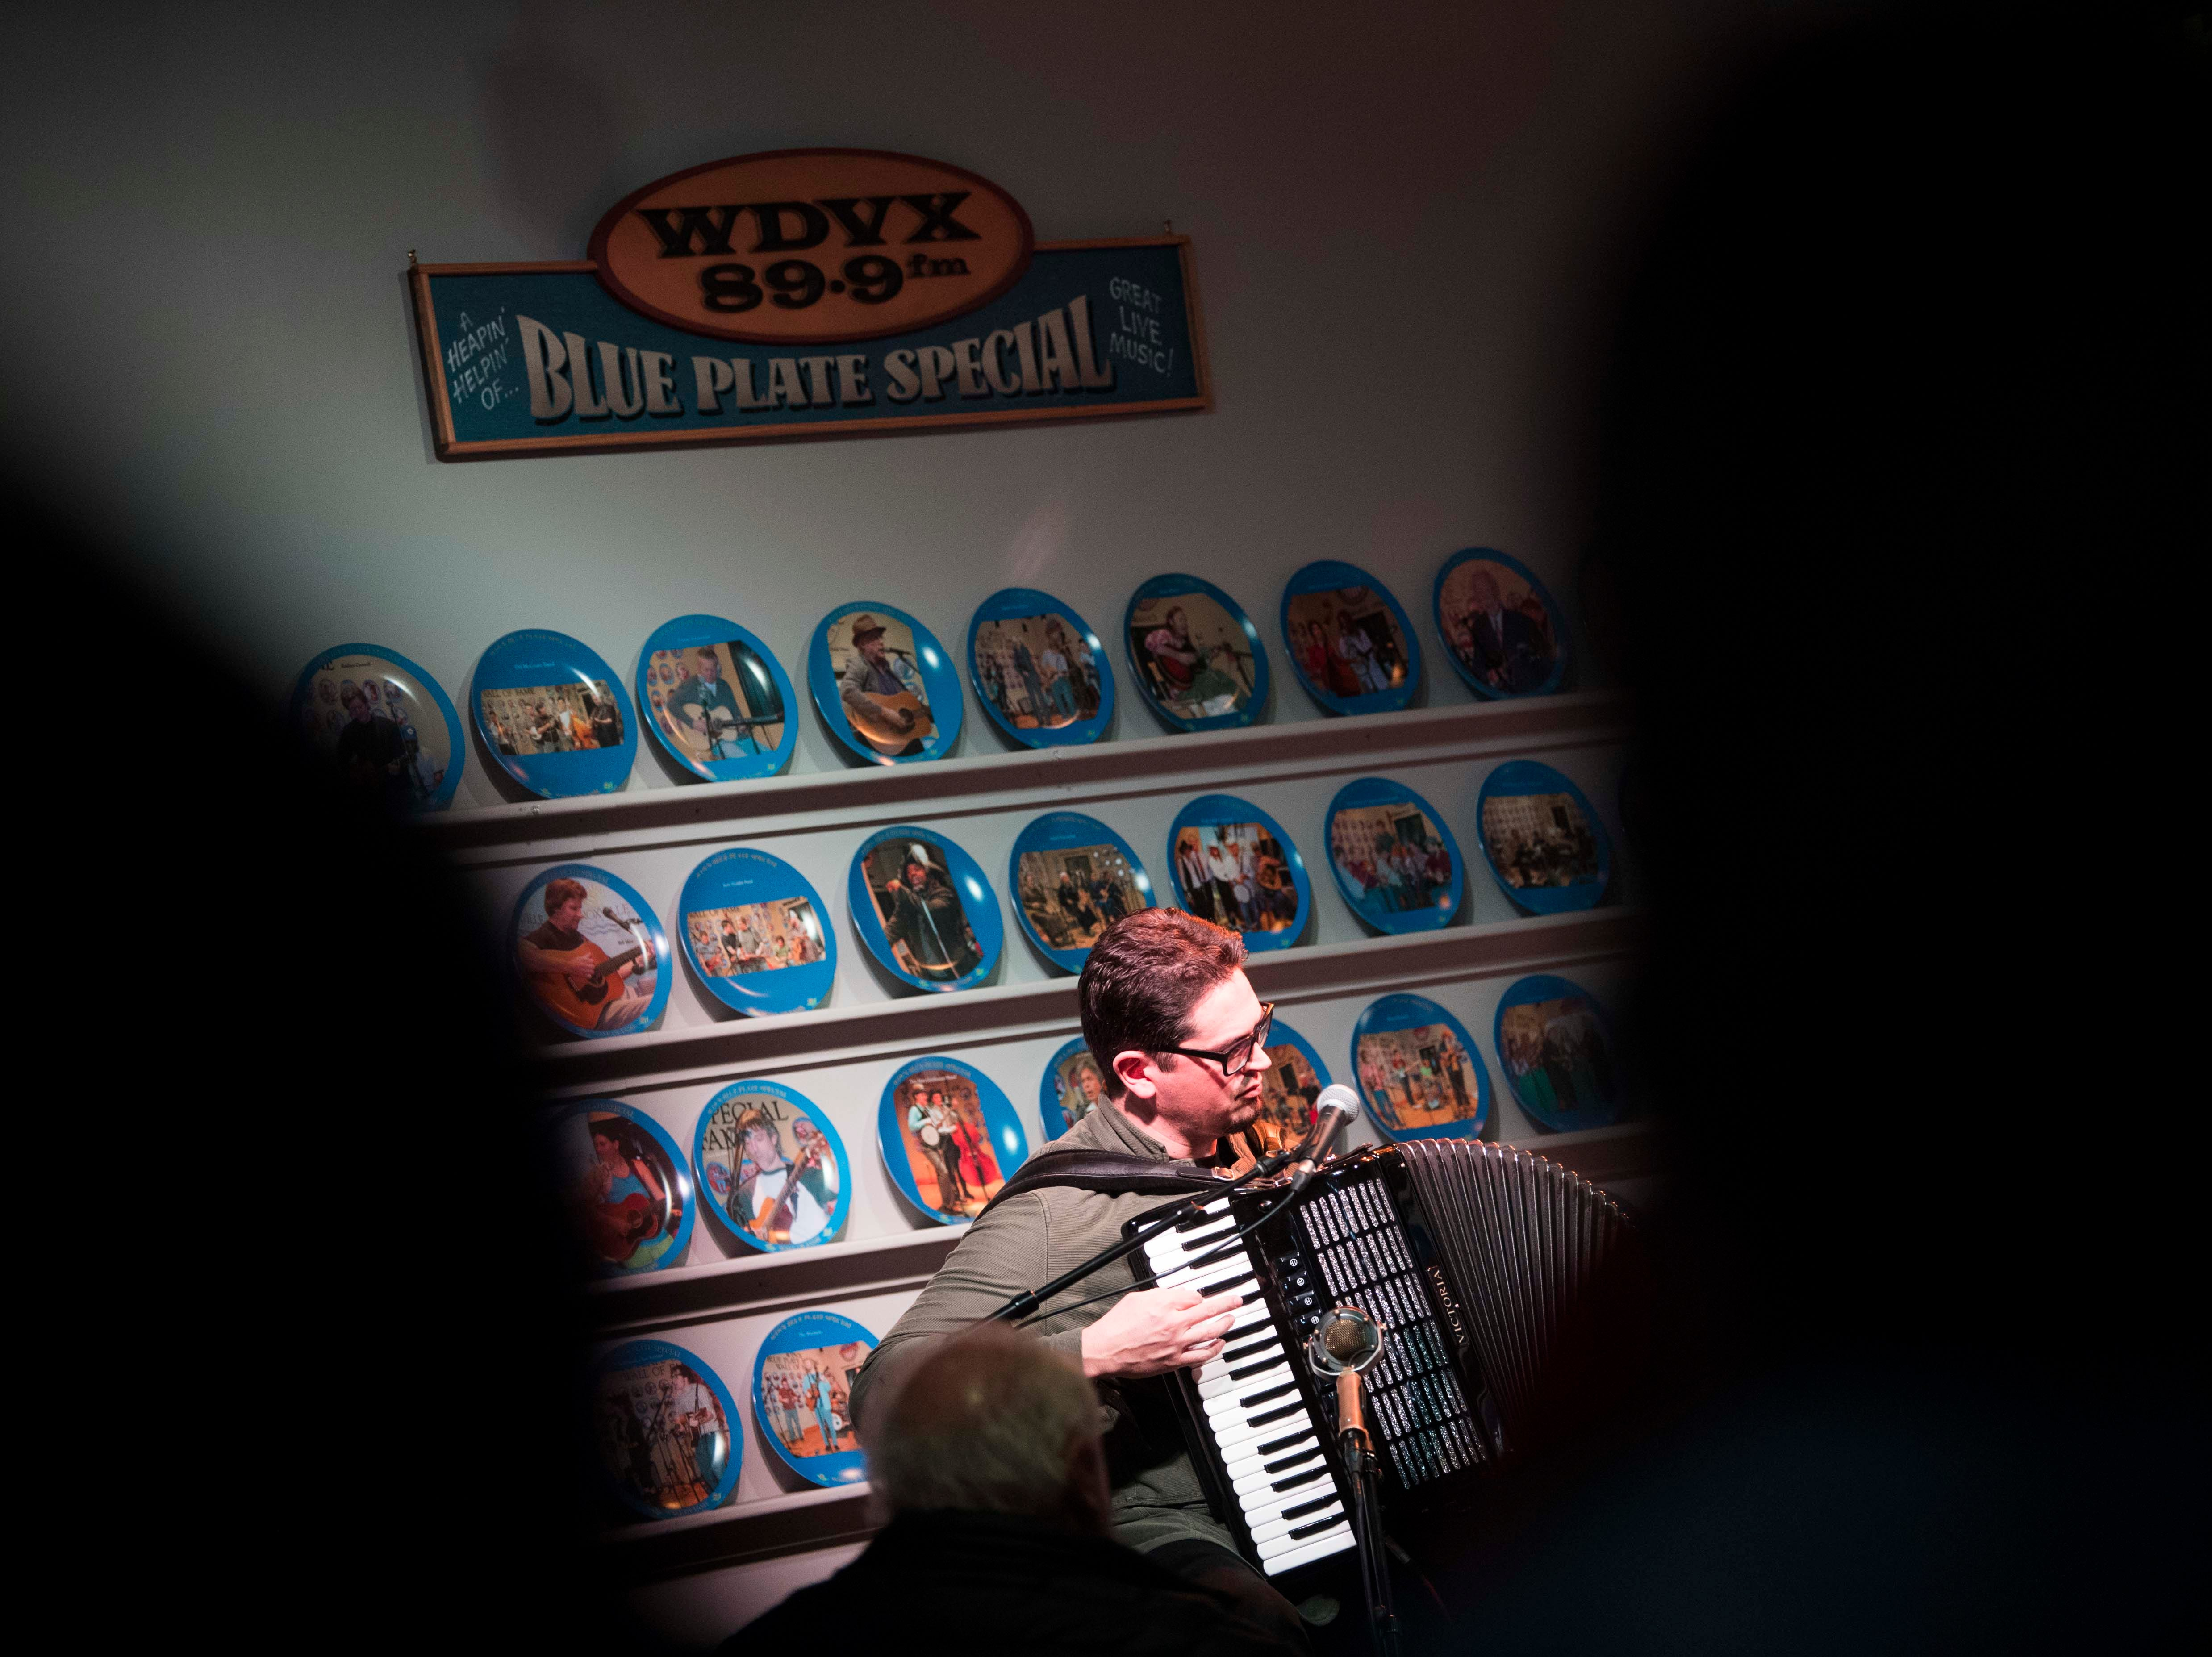 Francesco Turrisi performs during the WDVX Blue Plate Special in downtown Knoxville Thursday, March 21, 2019. The concert is the first performances of the 2019 Big Ears festival.